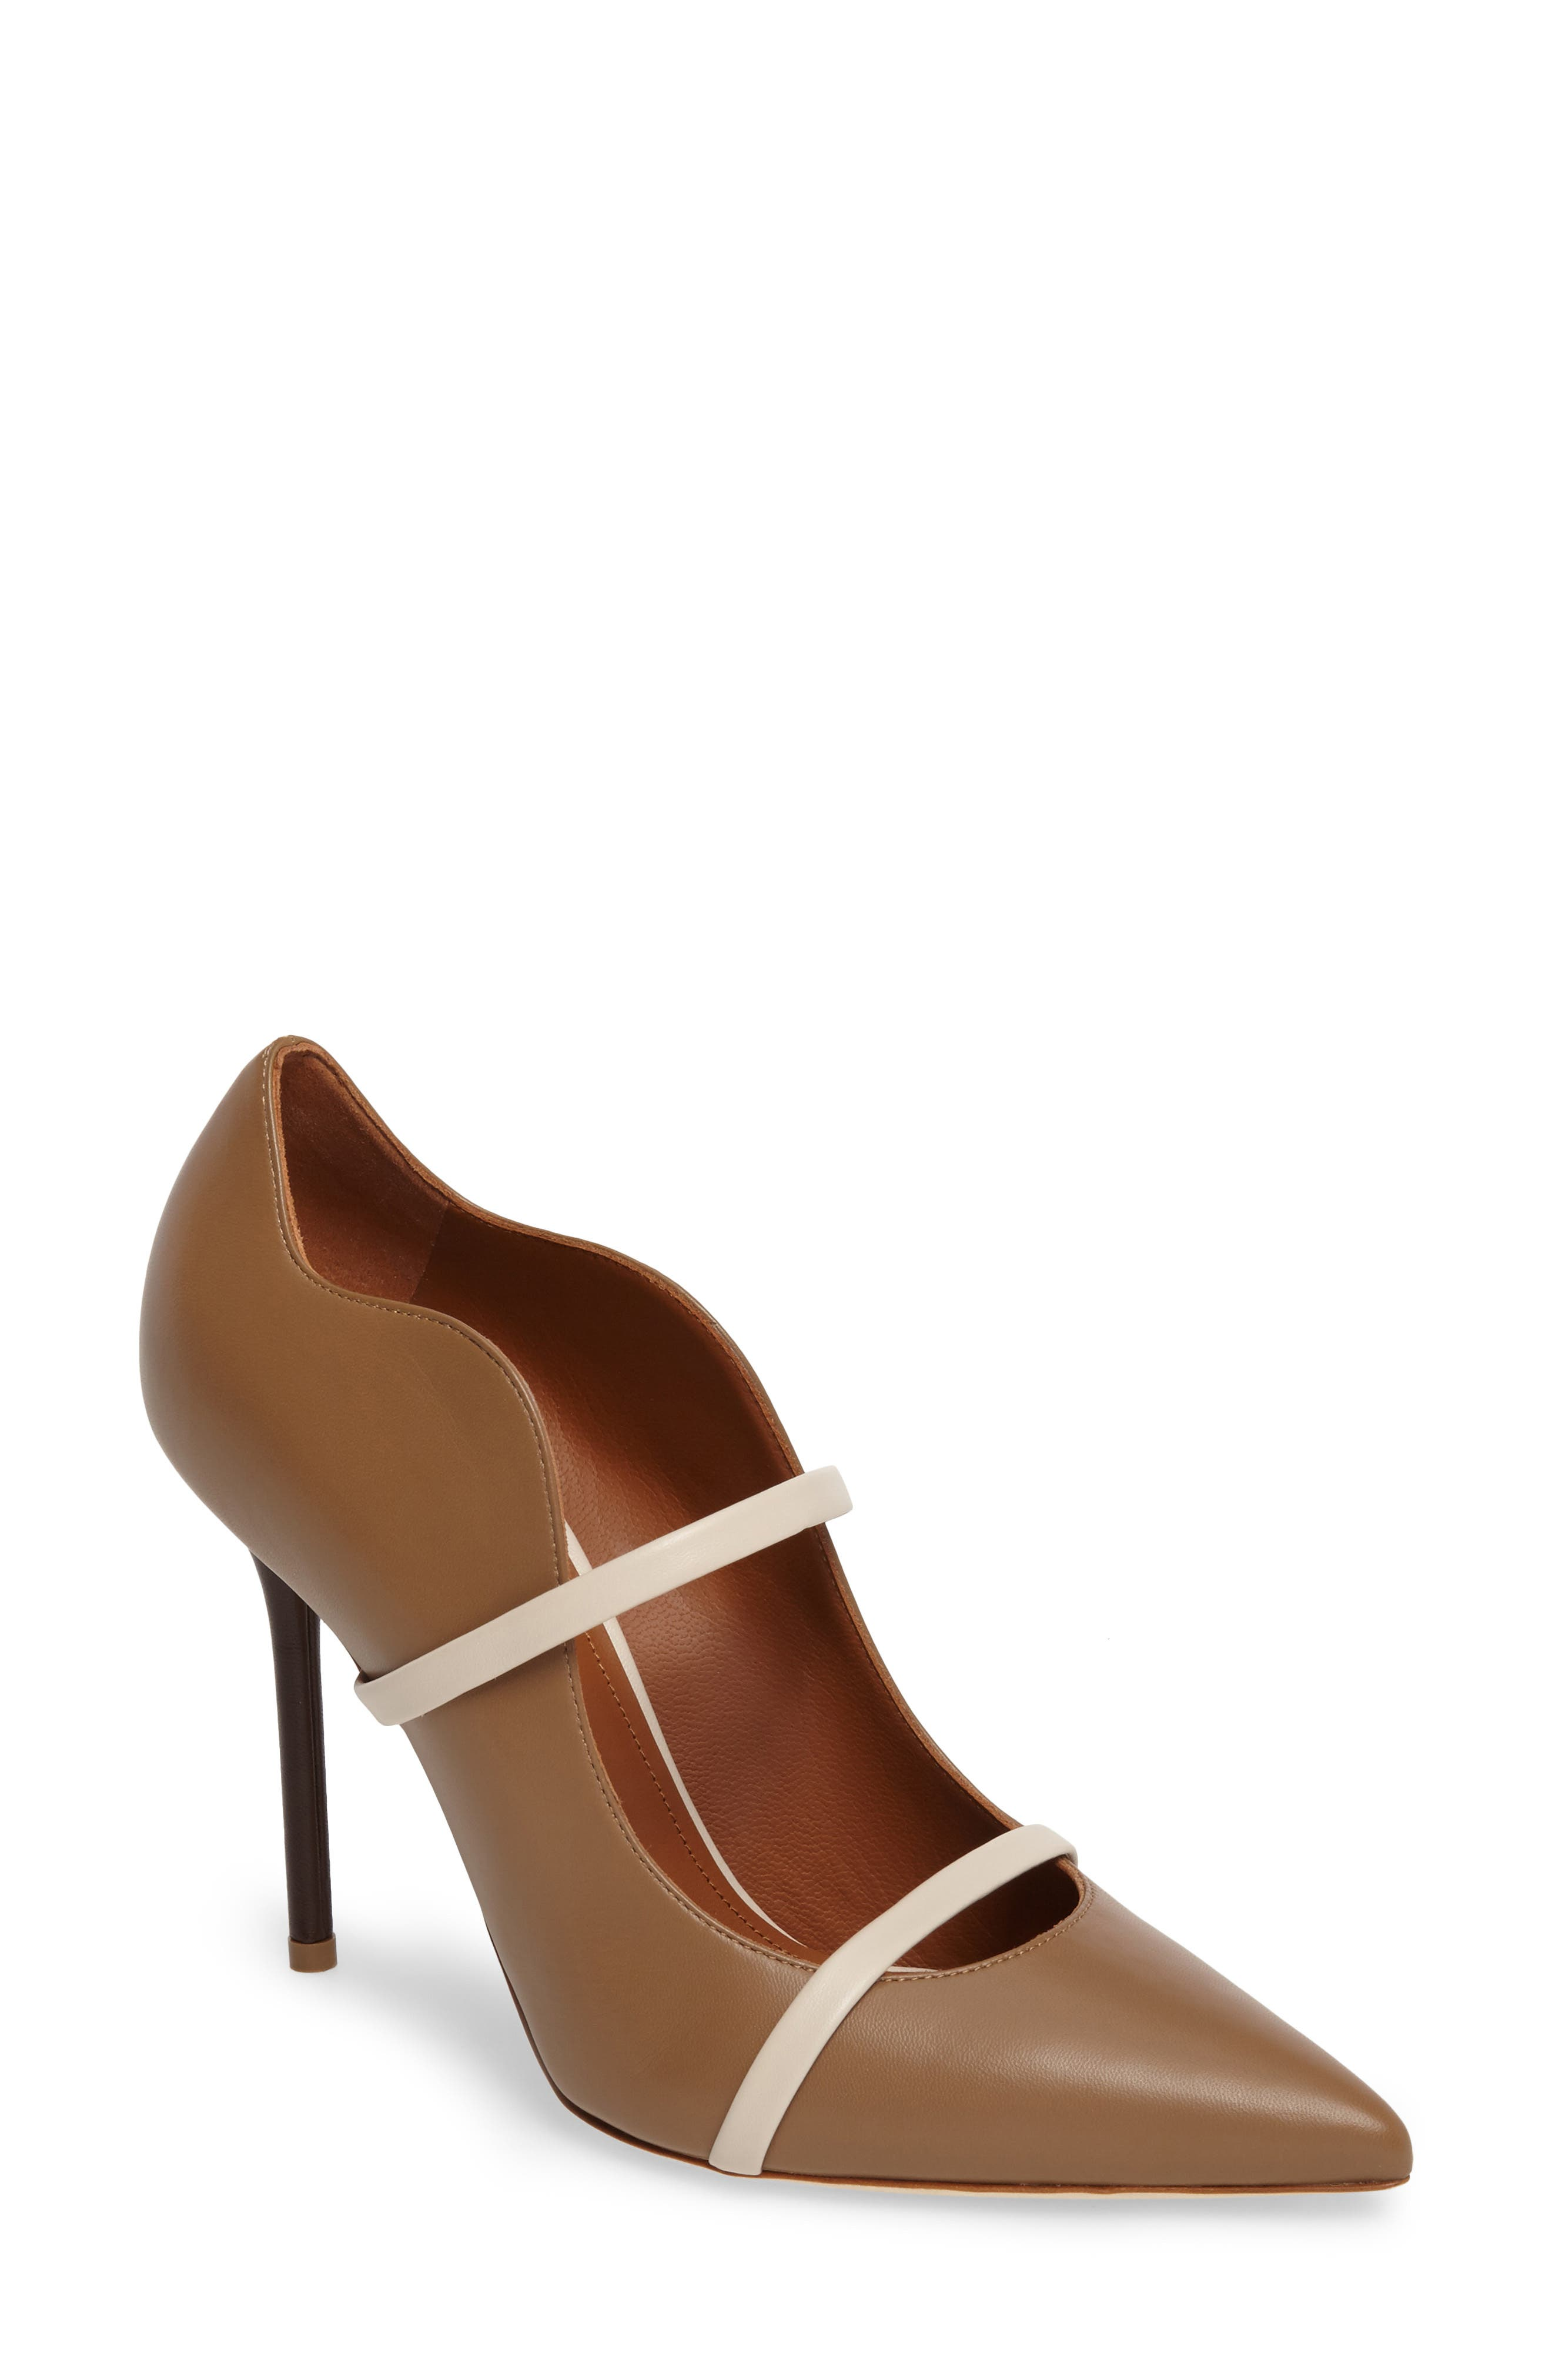 Maureen Double Band Pump,                             Main thumbnail 1, color,                             Chocolate/ White Leather